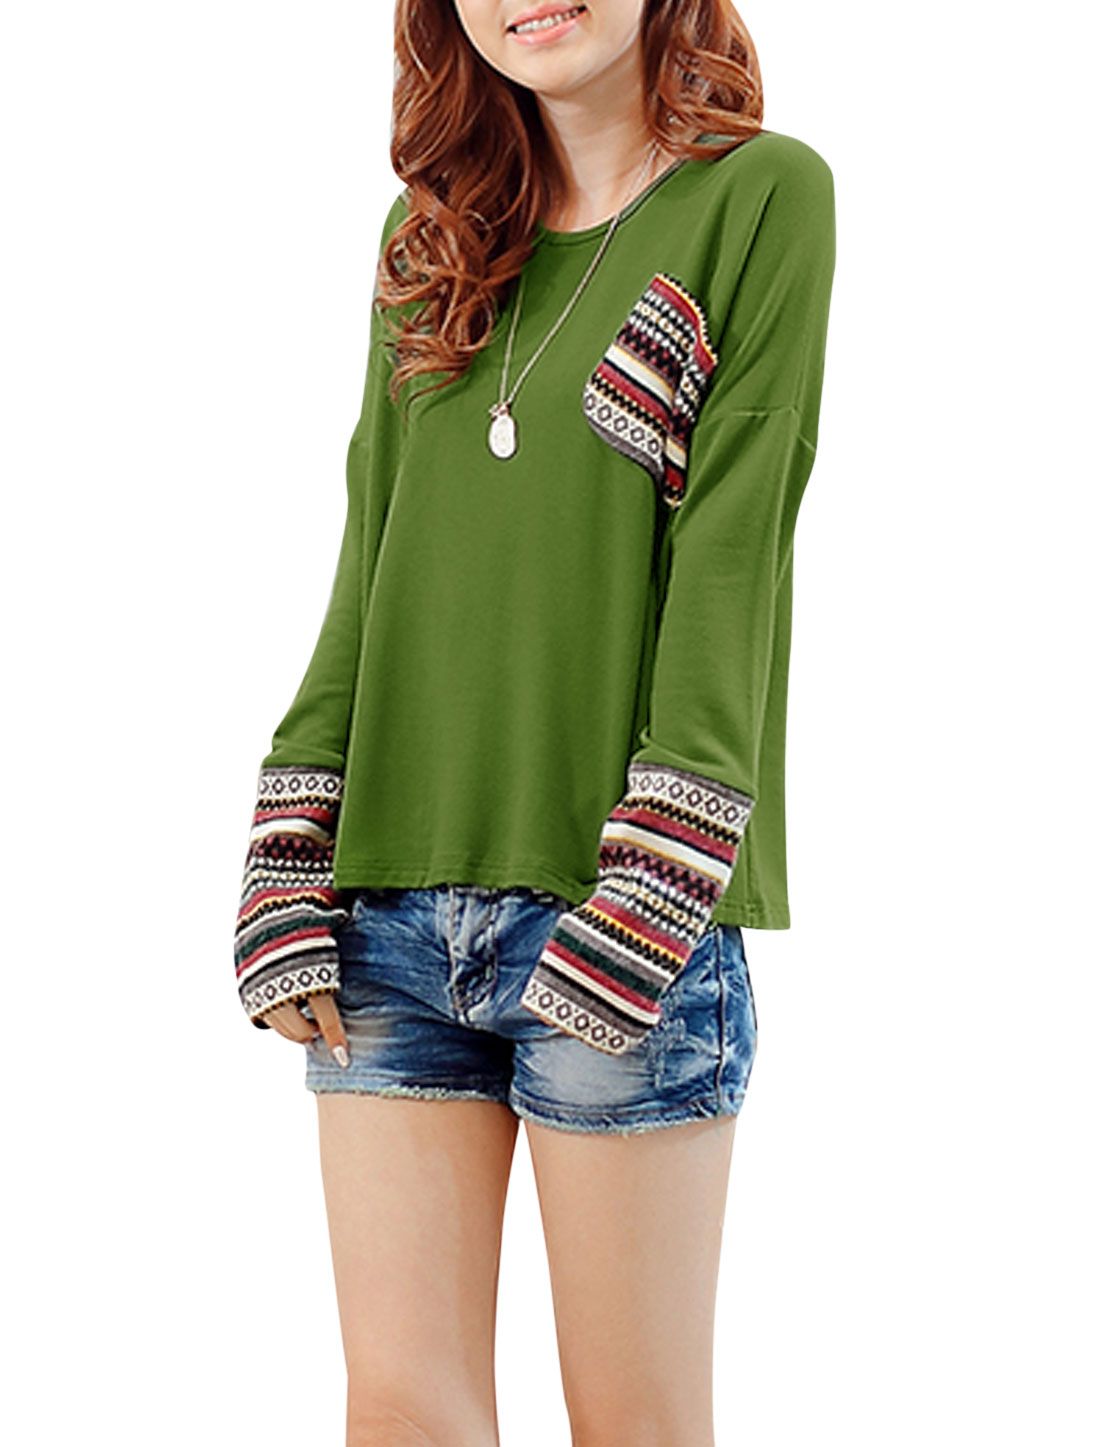 Lady Stripes Pattern Panel One Pocket Chest Casual Shirt Green S